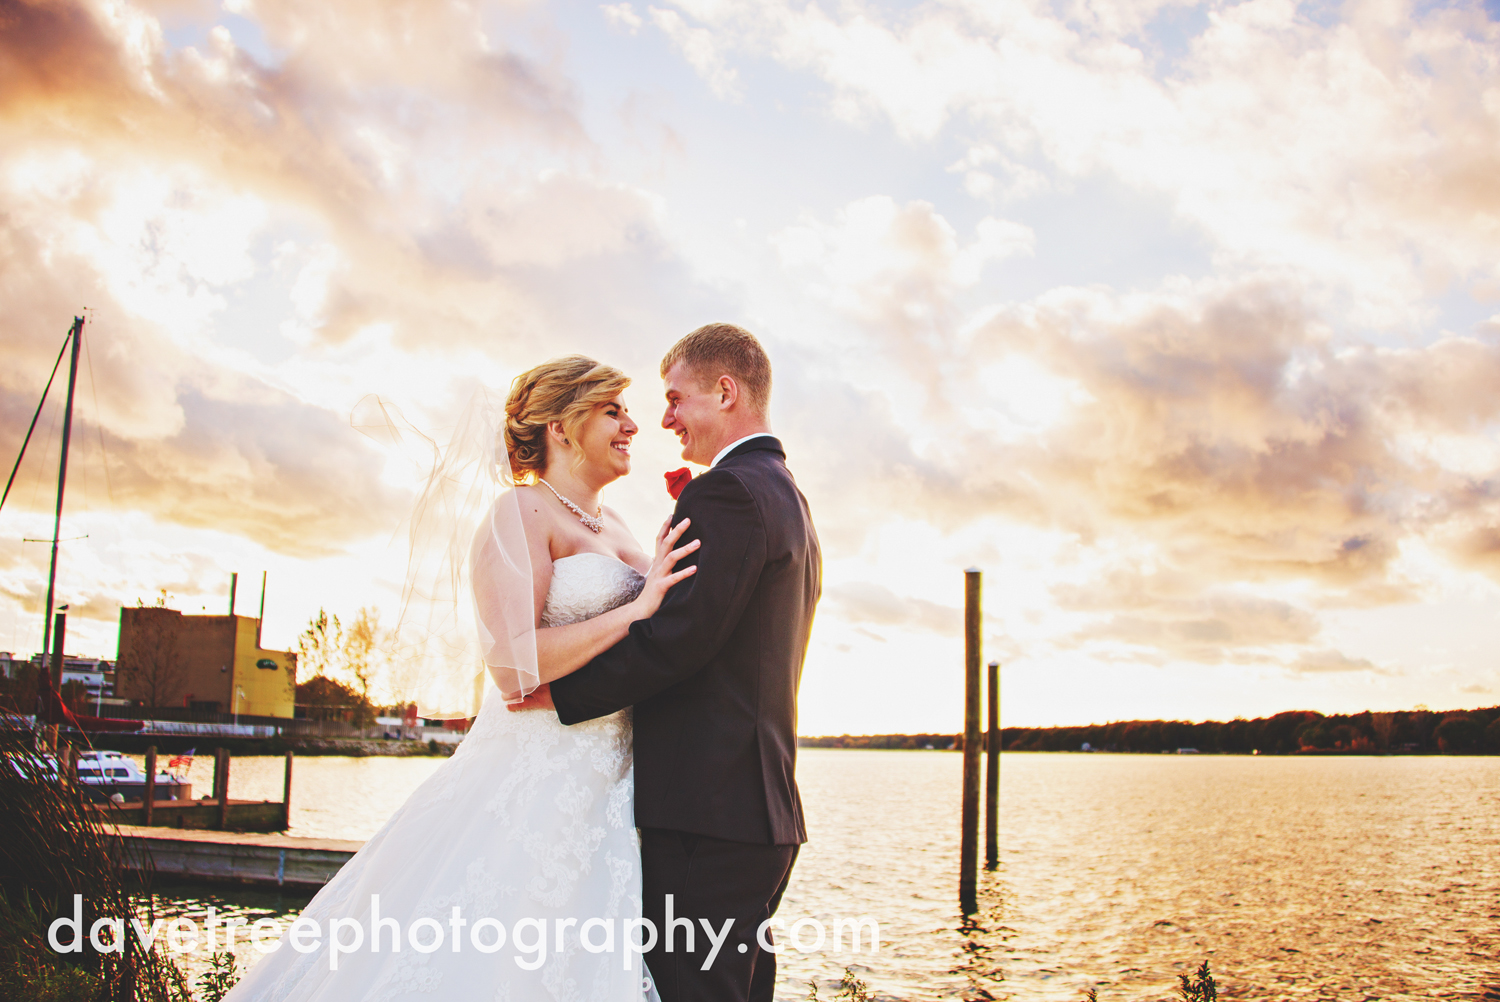 holland_wedding_photographer_27.jpg